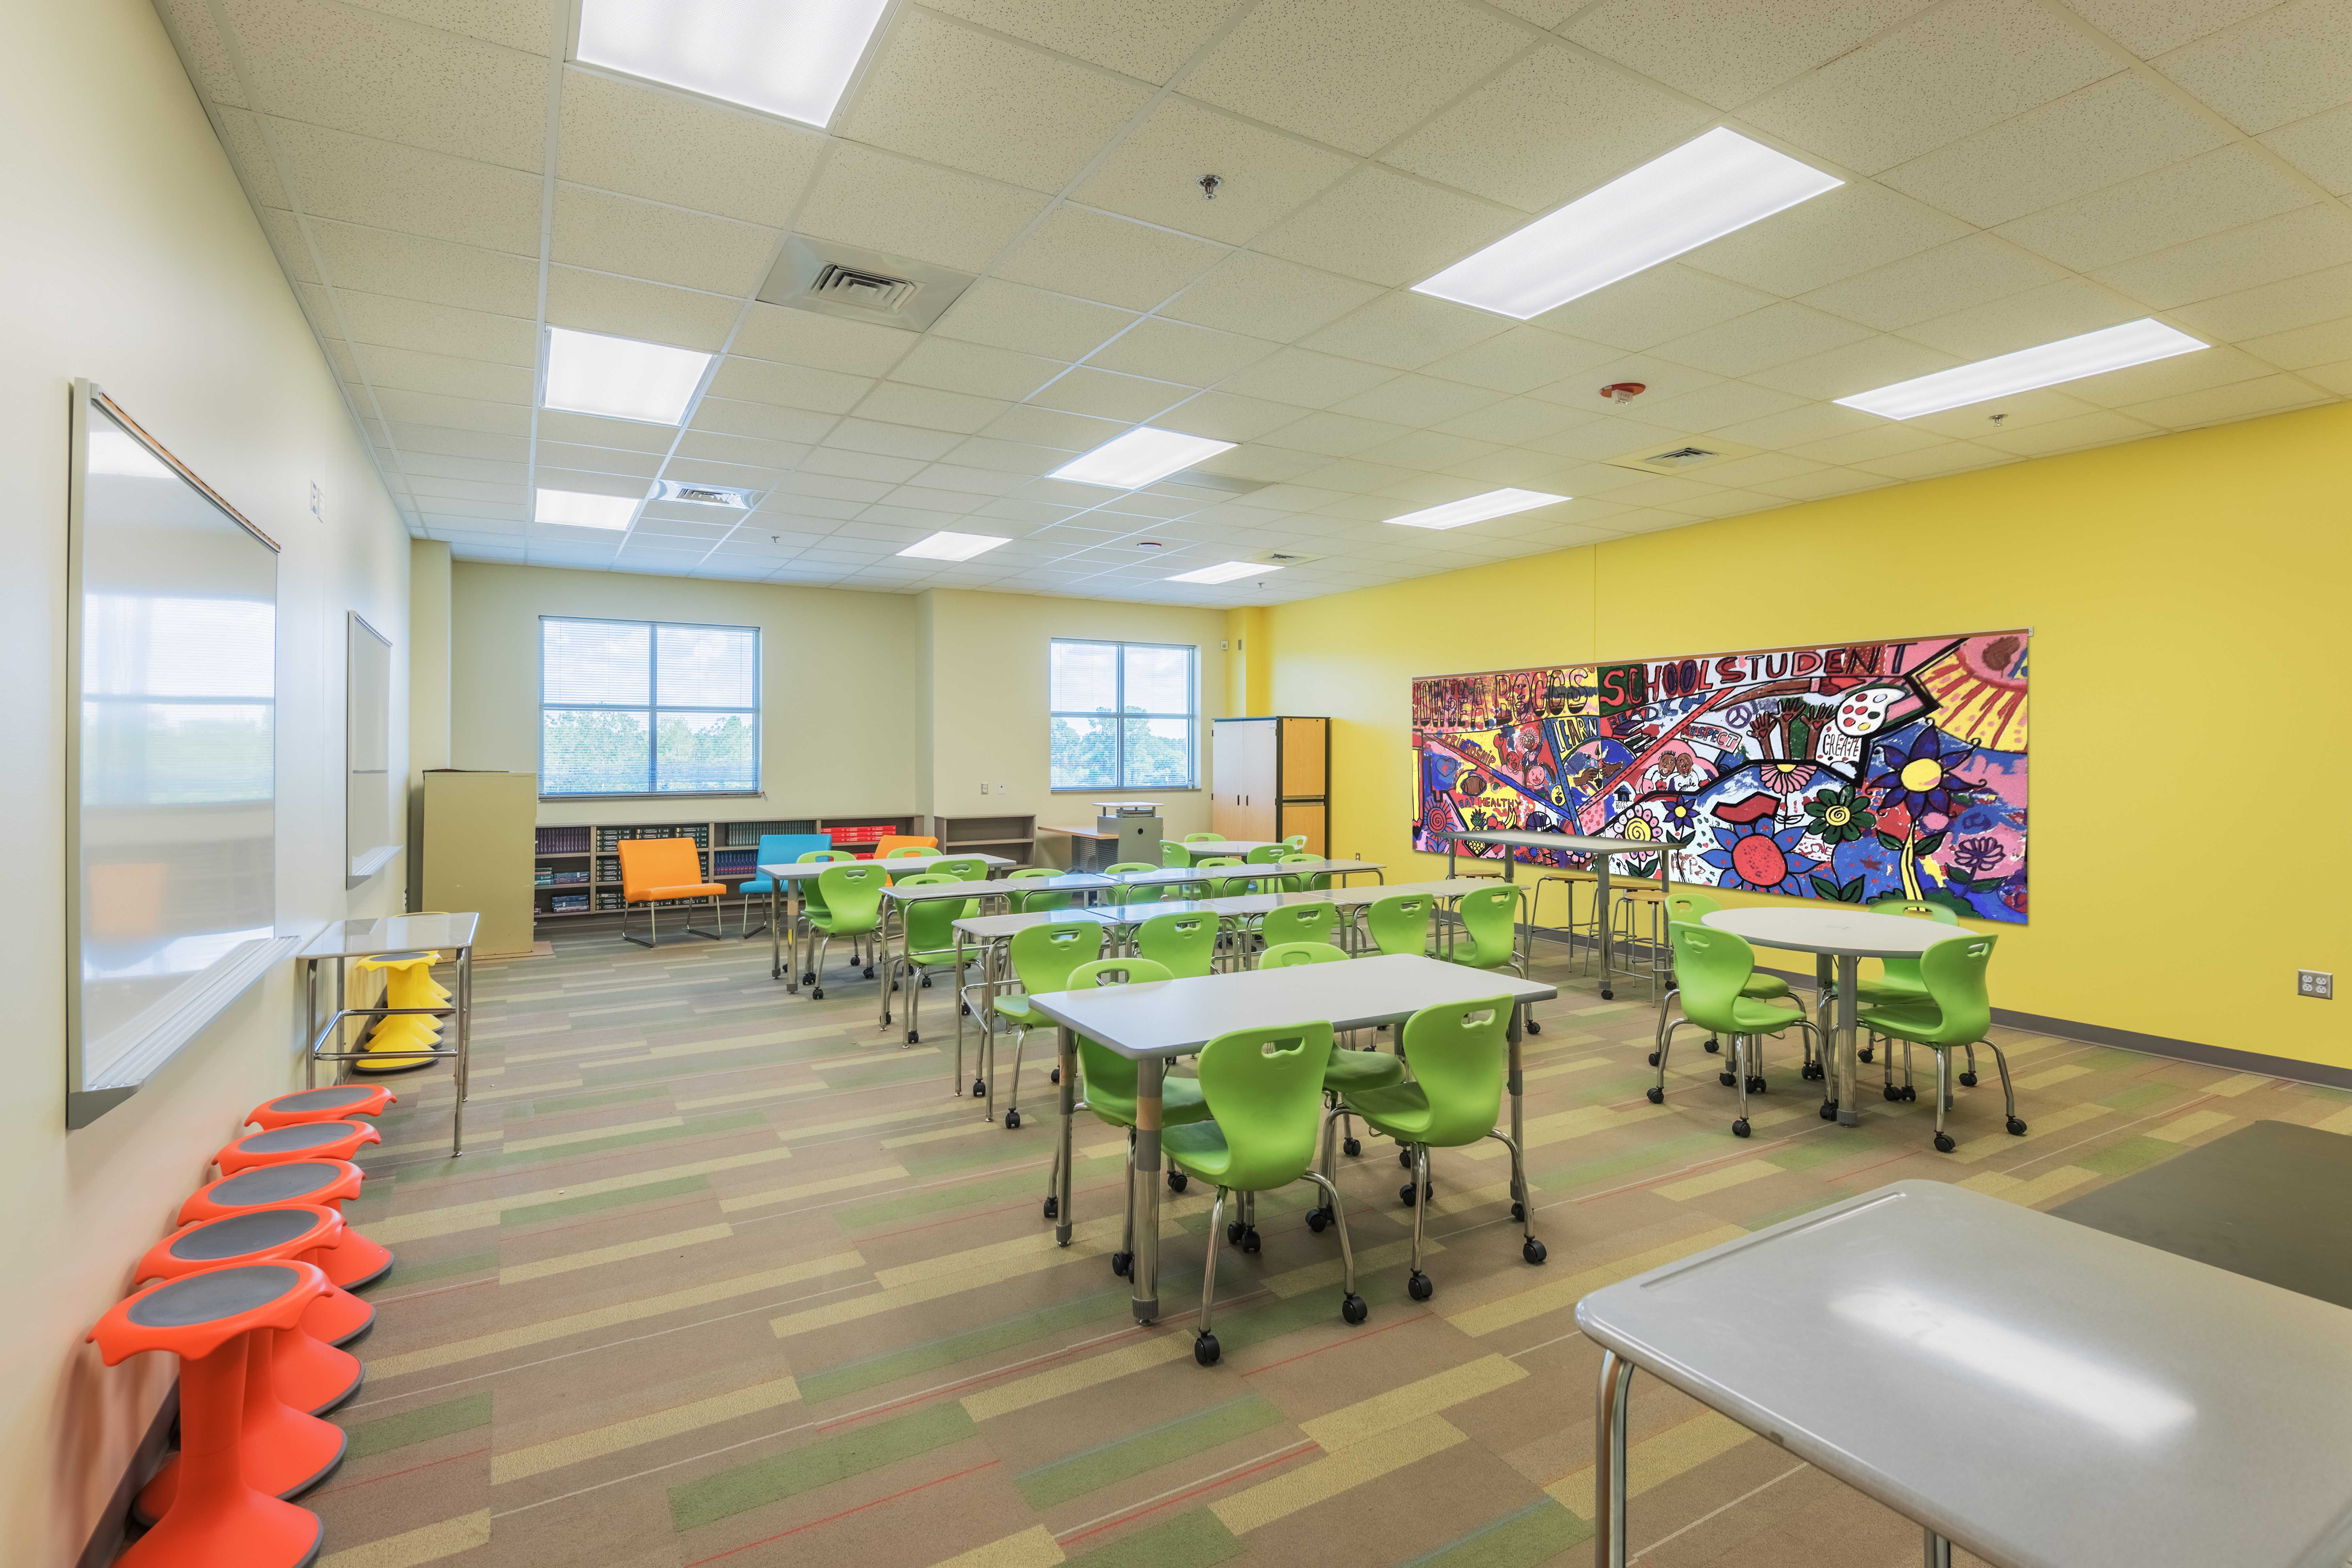 Classroom with mural